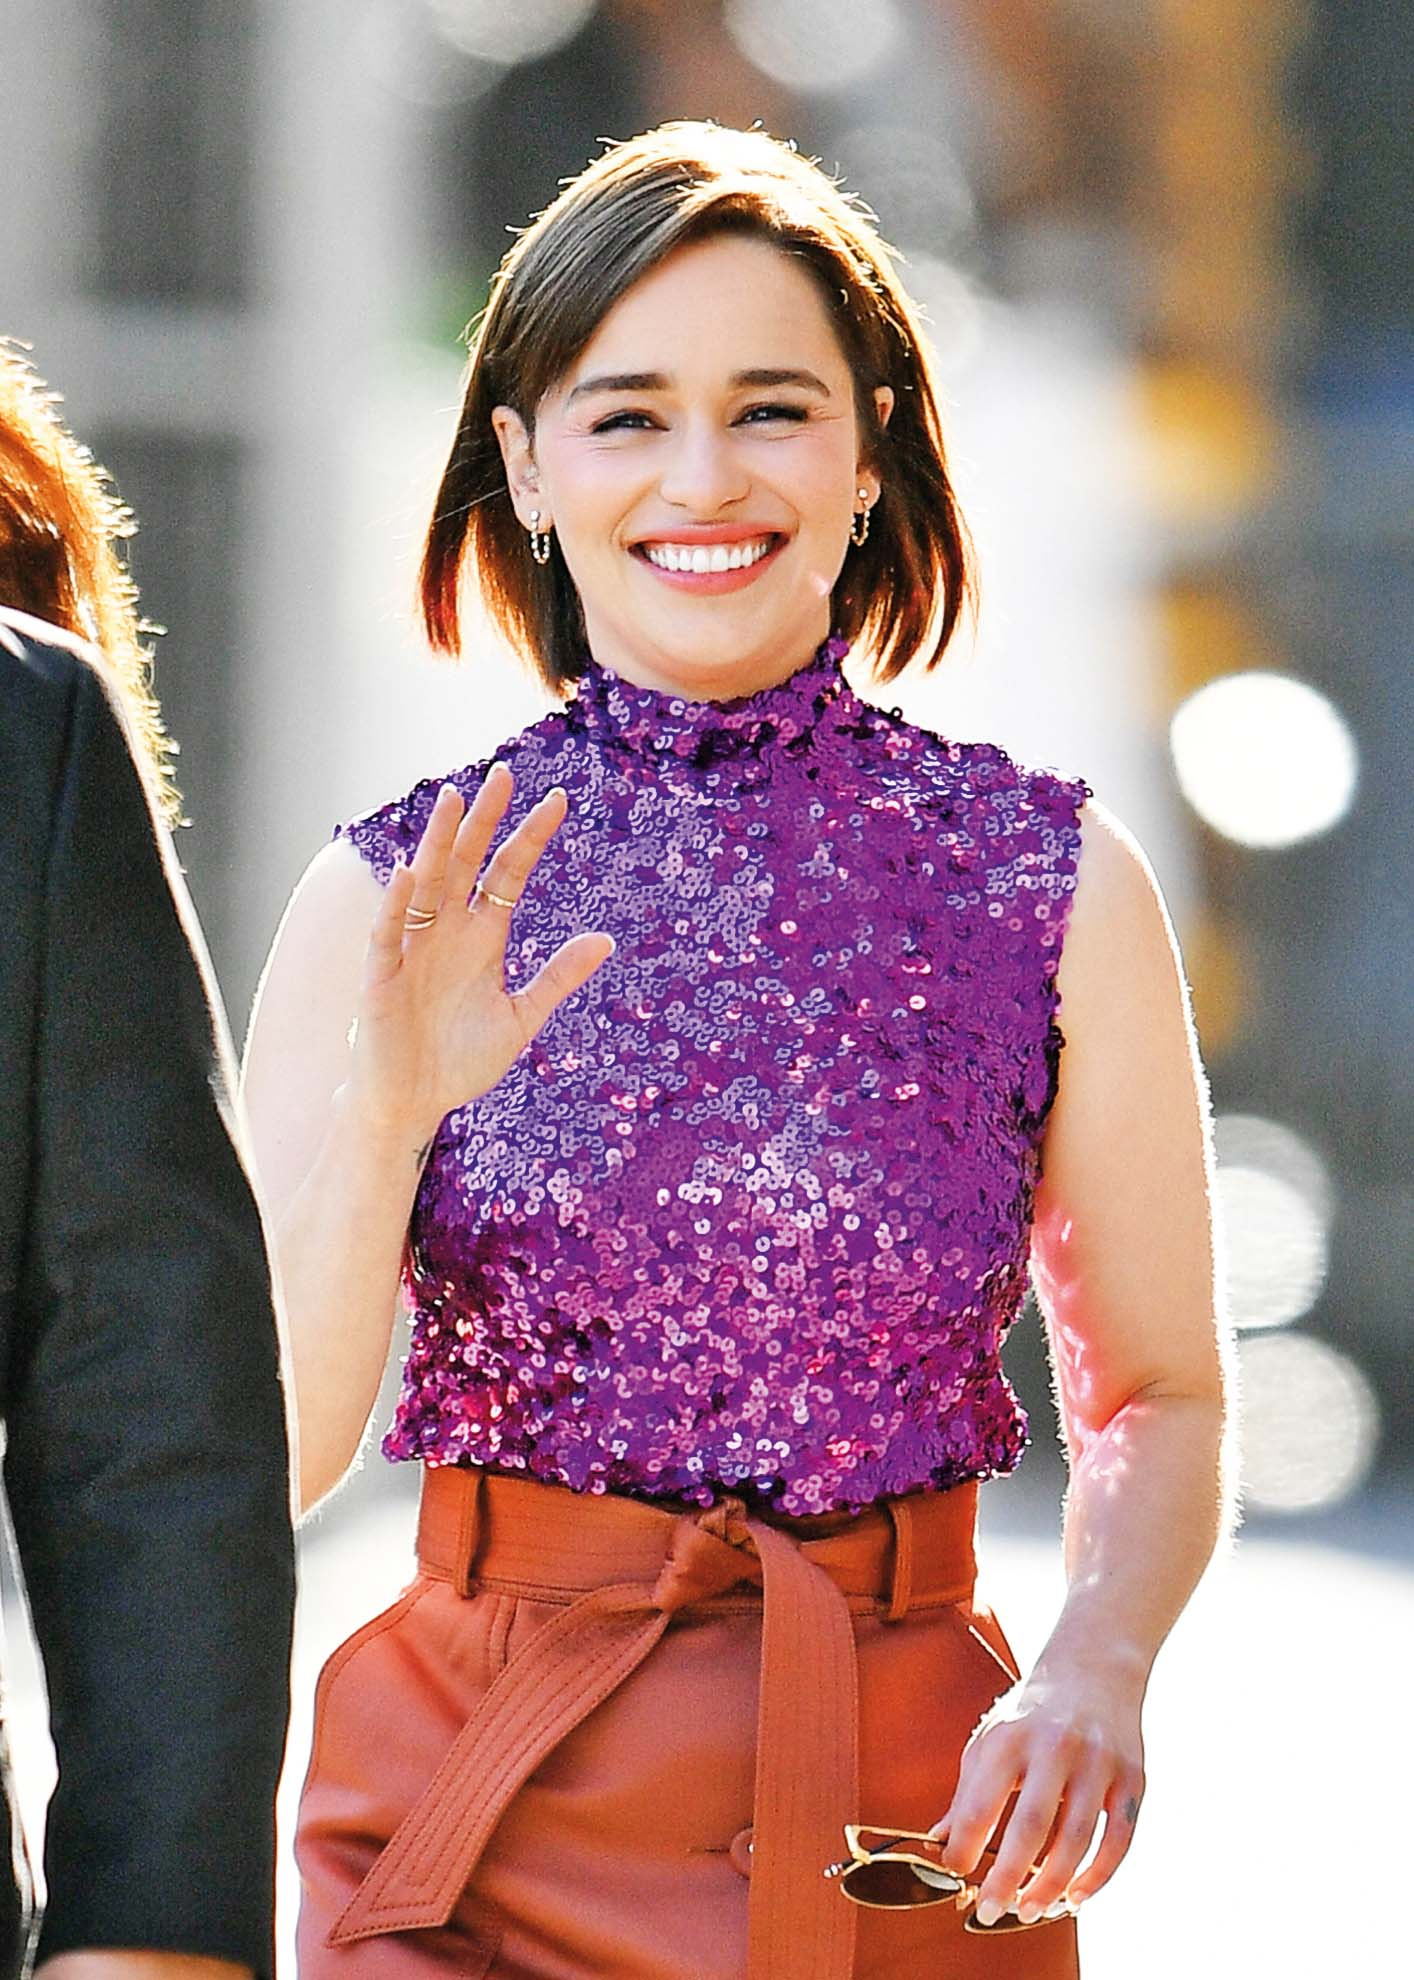 LOS ANGELES, CA - MAY 01: Emilia Clarke is seen on May 01, 2019 in Los Angeles, California.  (Photo by PG/Bauer-Griffin/GC Images)